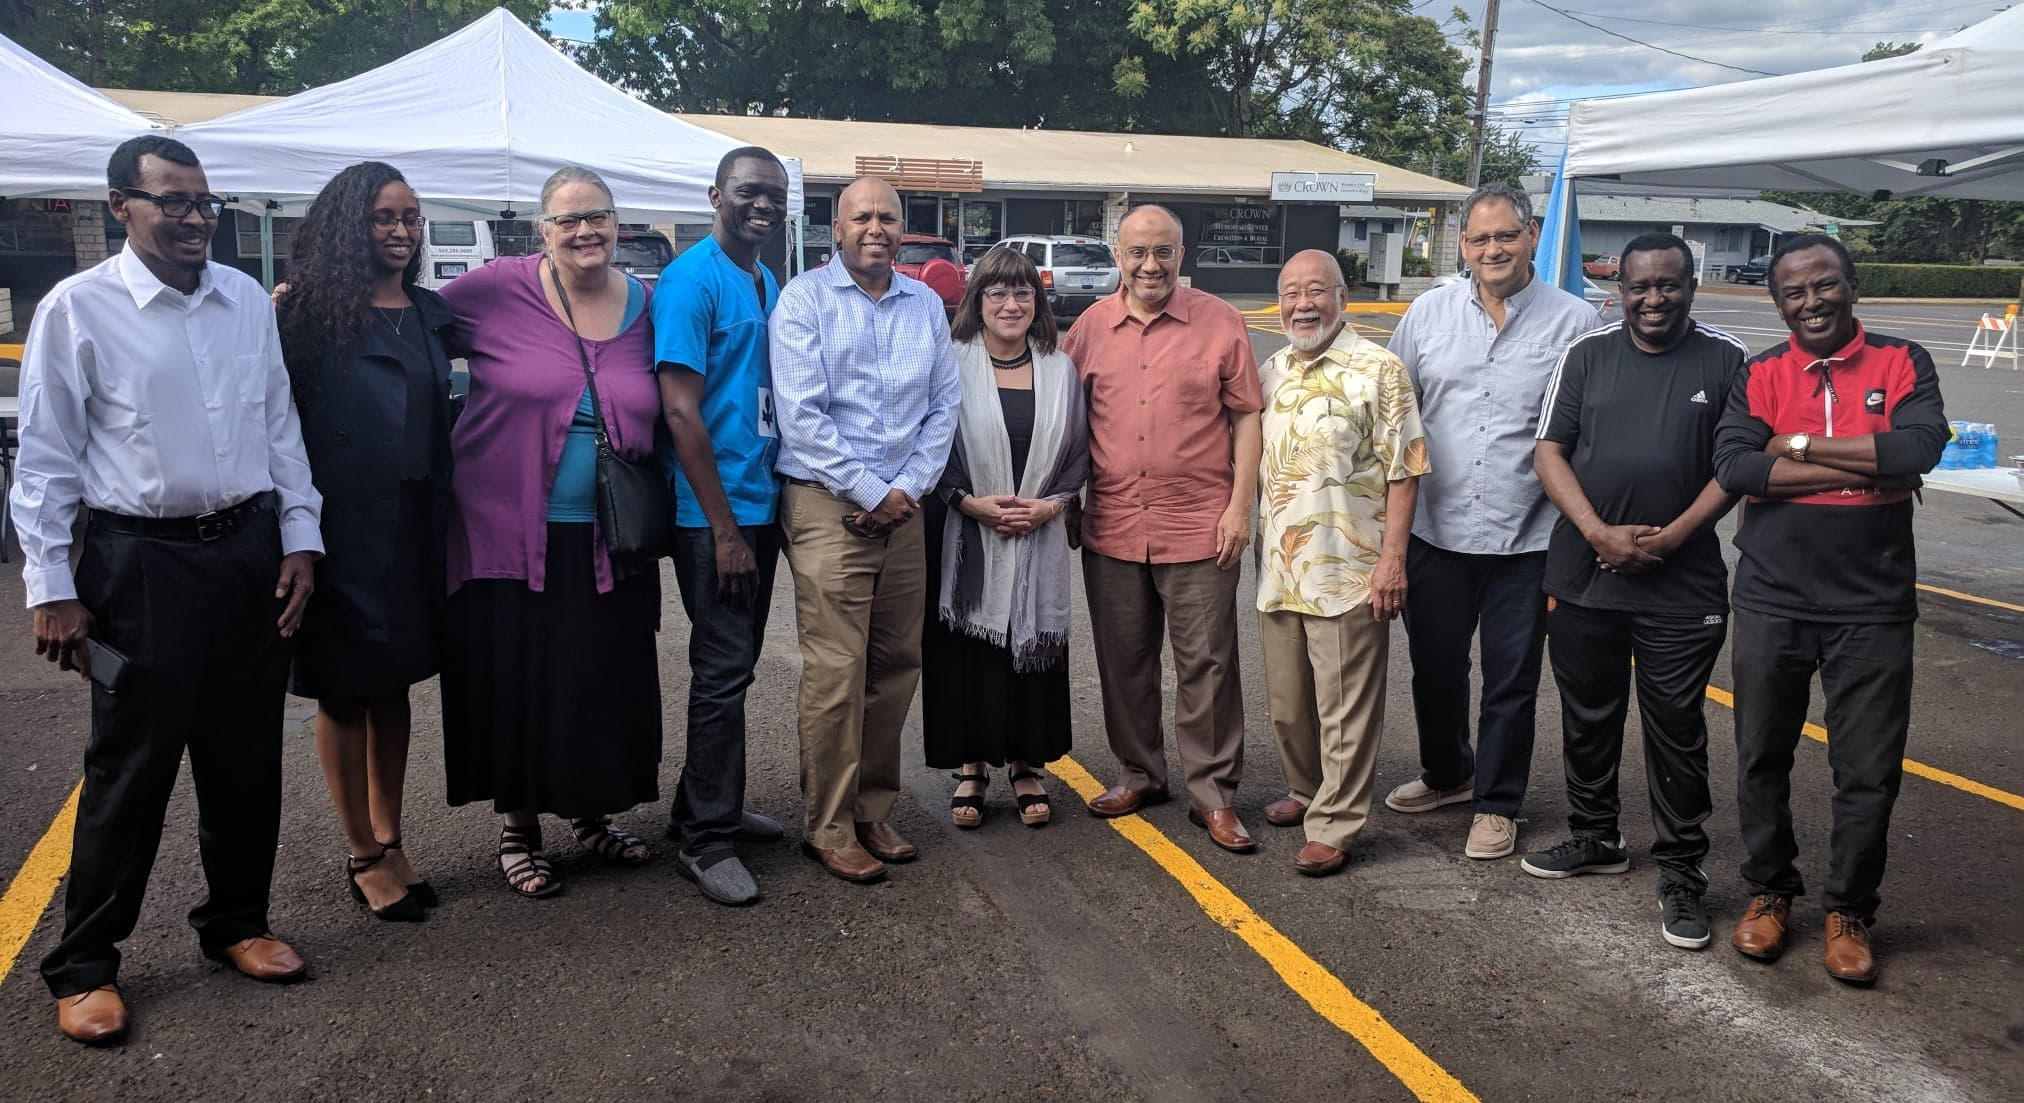 Somali American Council of Oregon Grand Opening - June 23, 2018 at 1511 SE 122nd Ave. Click for photos.